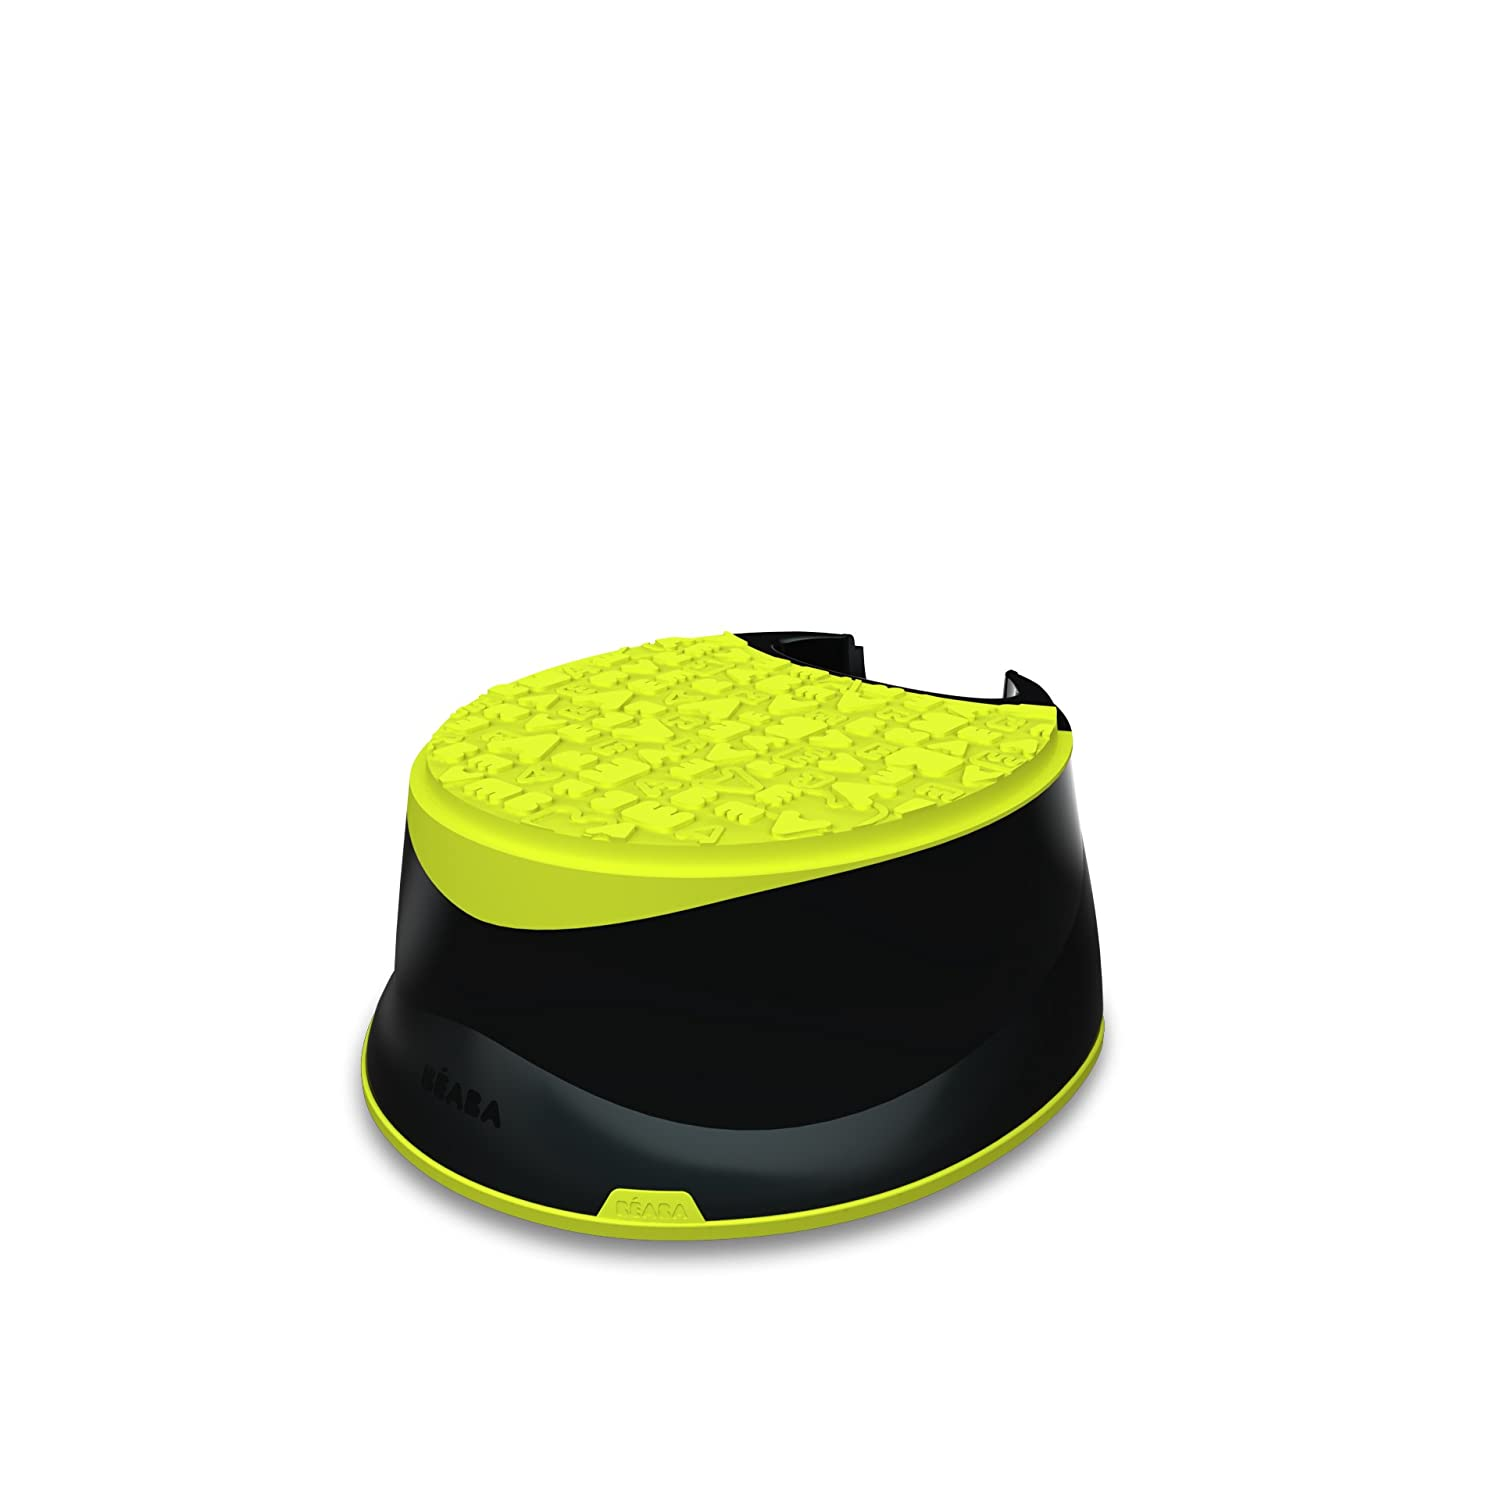 Beaba Potty Step Booster (Black and White) 920202